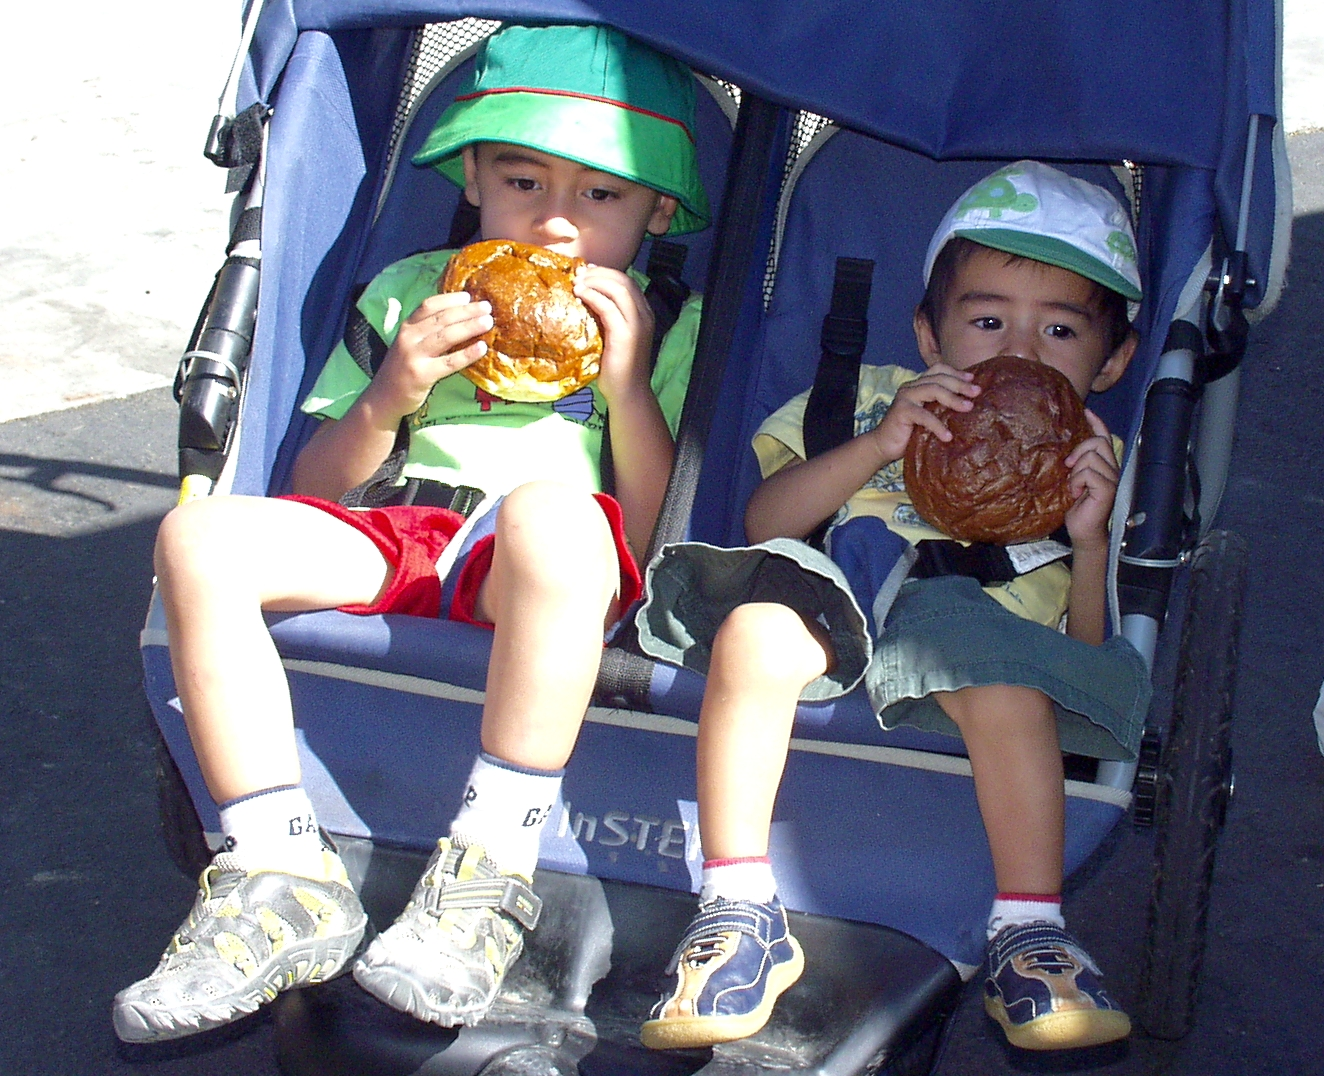 Ariya (left) and Suriya Sethi enjoy a snack and a primo ride at Wallingford Farmers Market on July 1st. Photo copyright 2009 by Zachary D. Lyons.